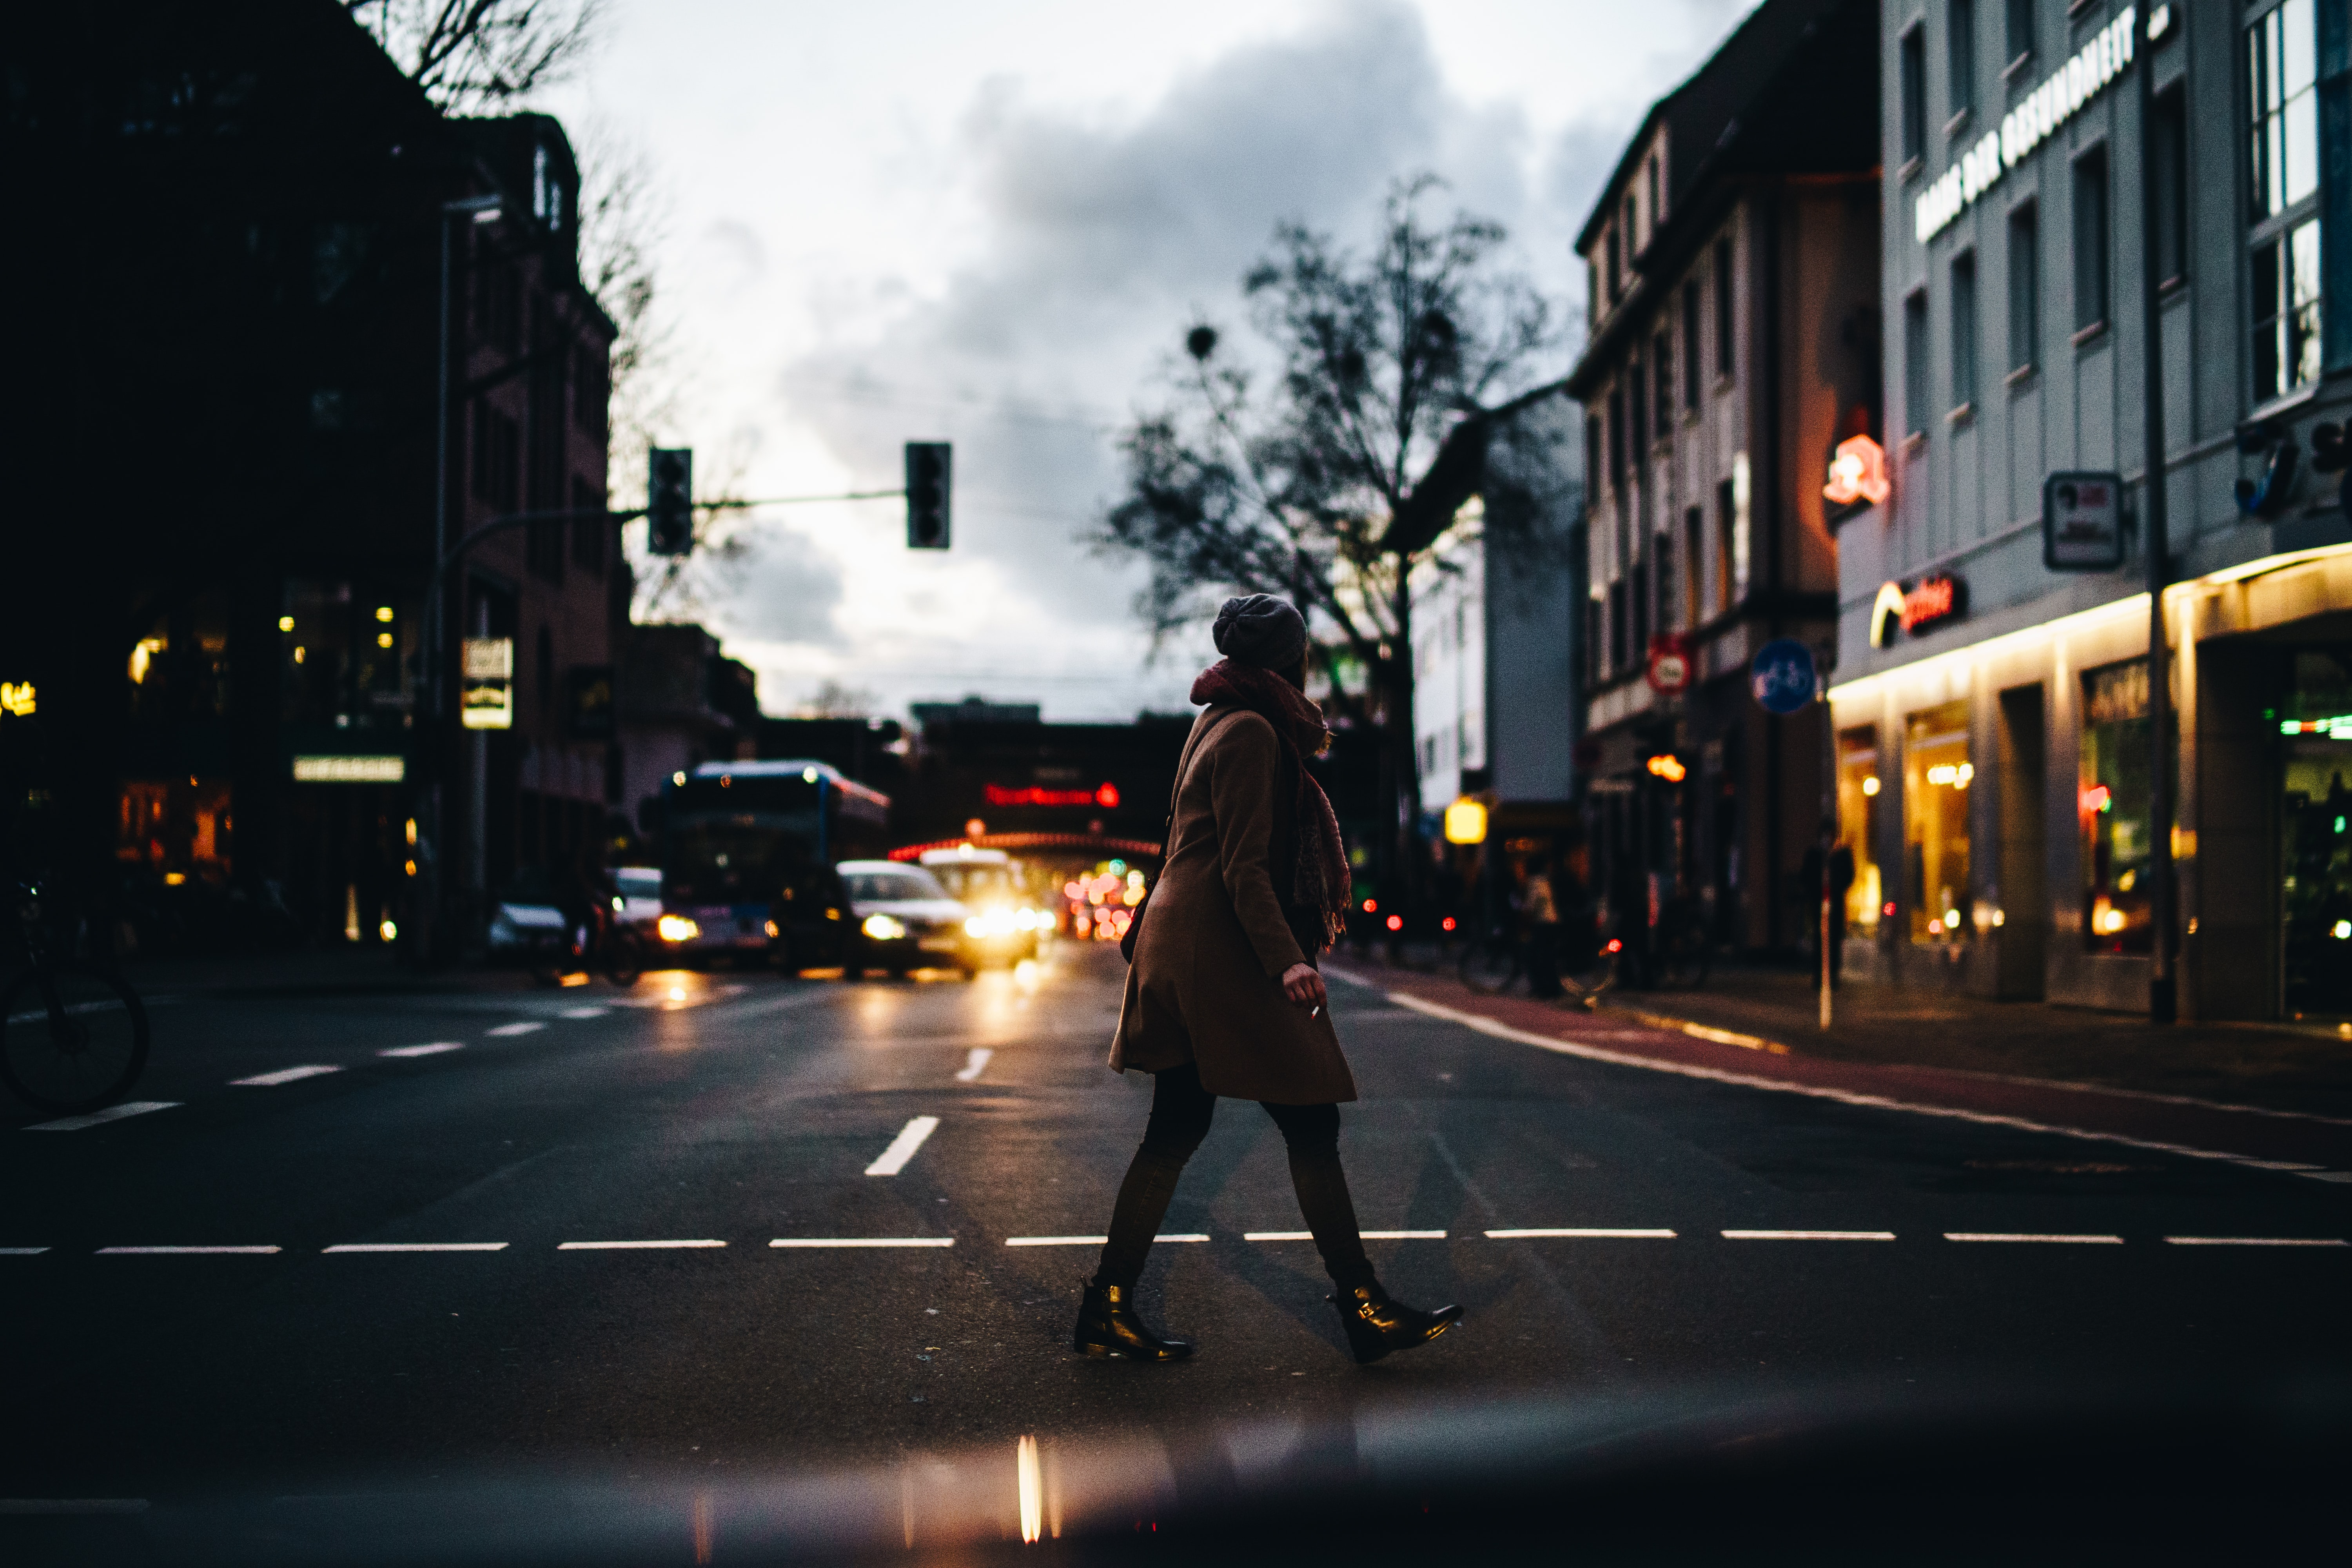 Woman walking on street with cars